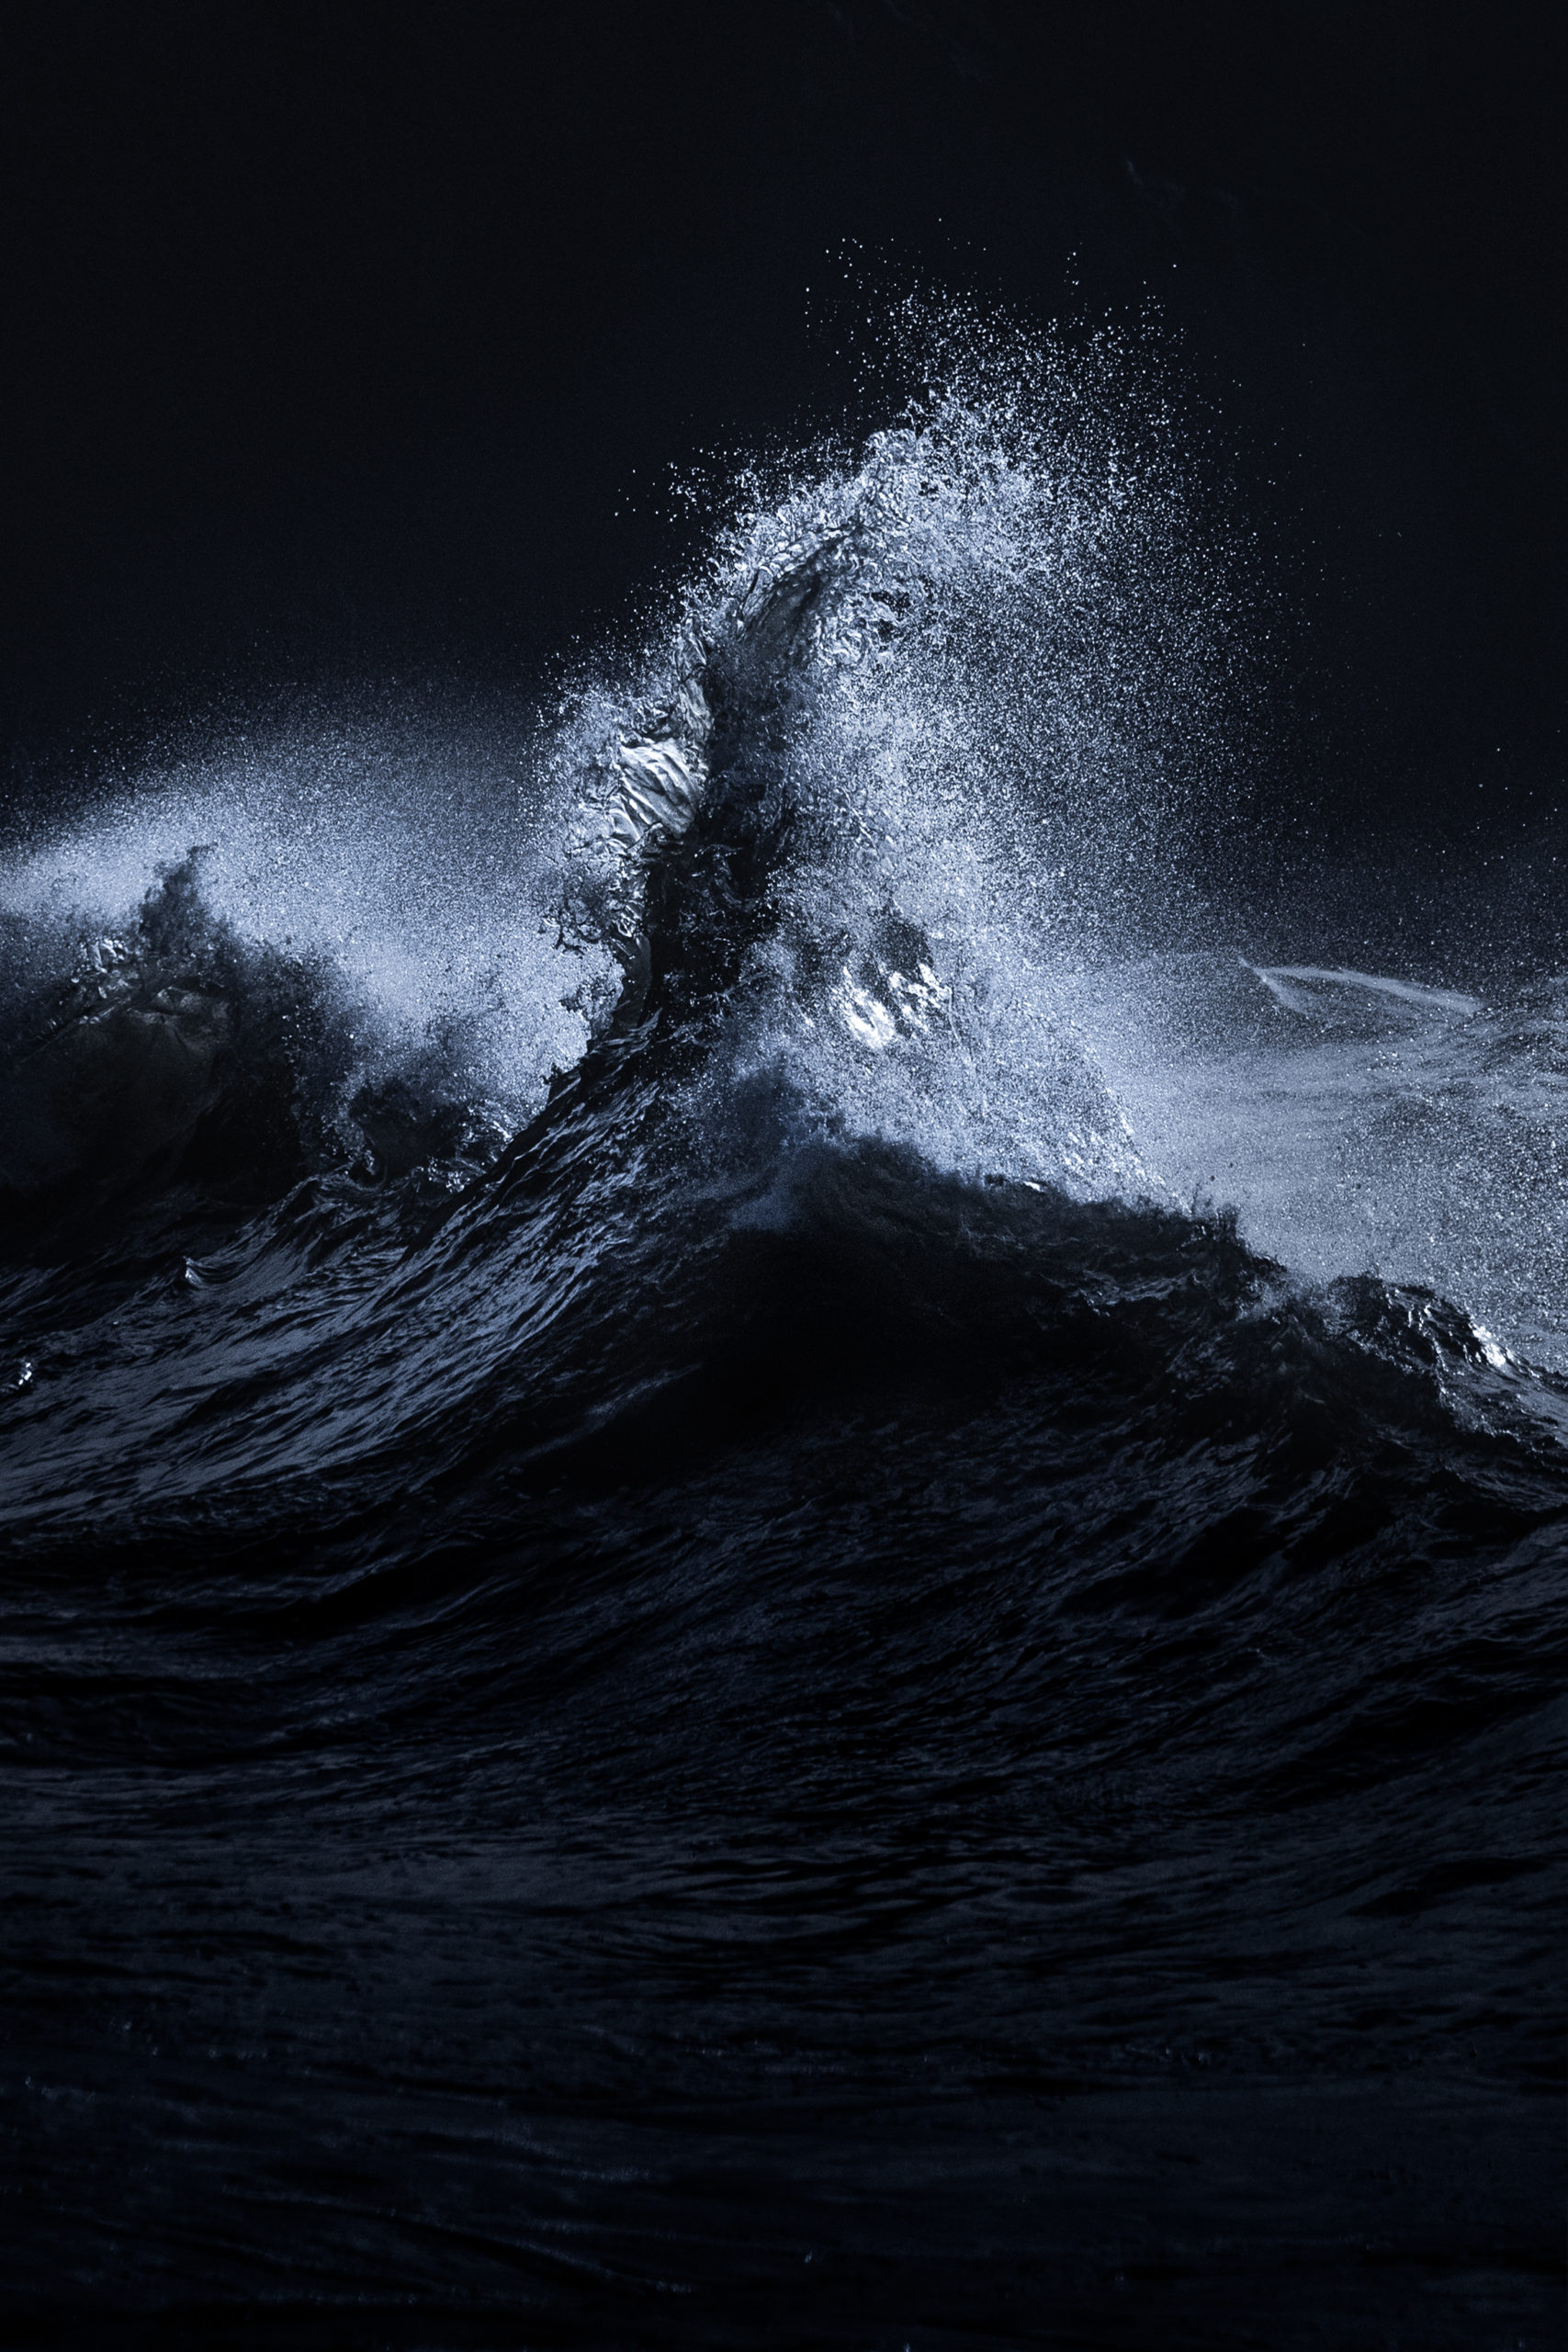 Dramatic Wave photography shot at Cape Disappointment state park in Washington.